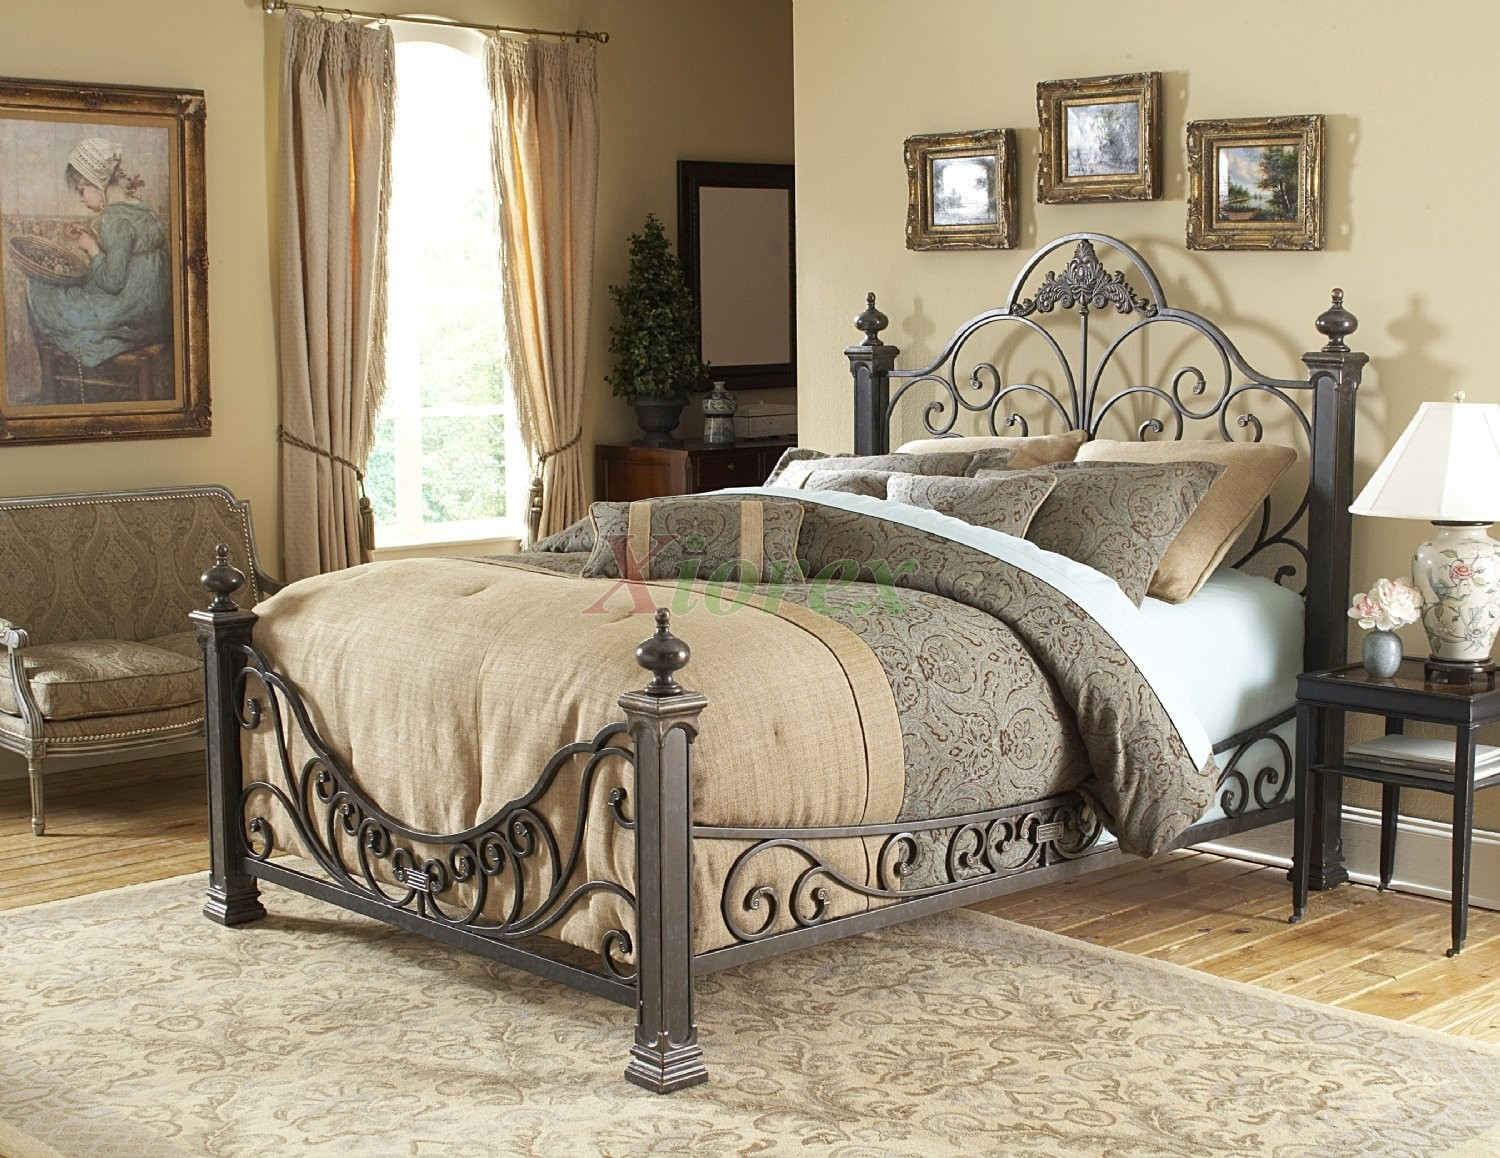 Fashion Bedroom Furniture Unique Baroque Bed  Poster Bed In Gilded Slatefashion Bed Group  Xiorex 2017